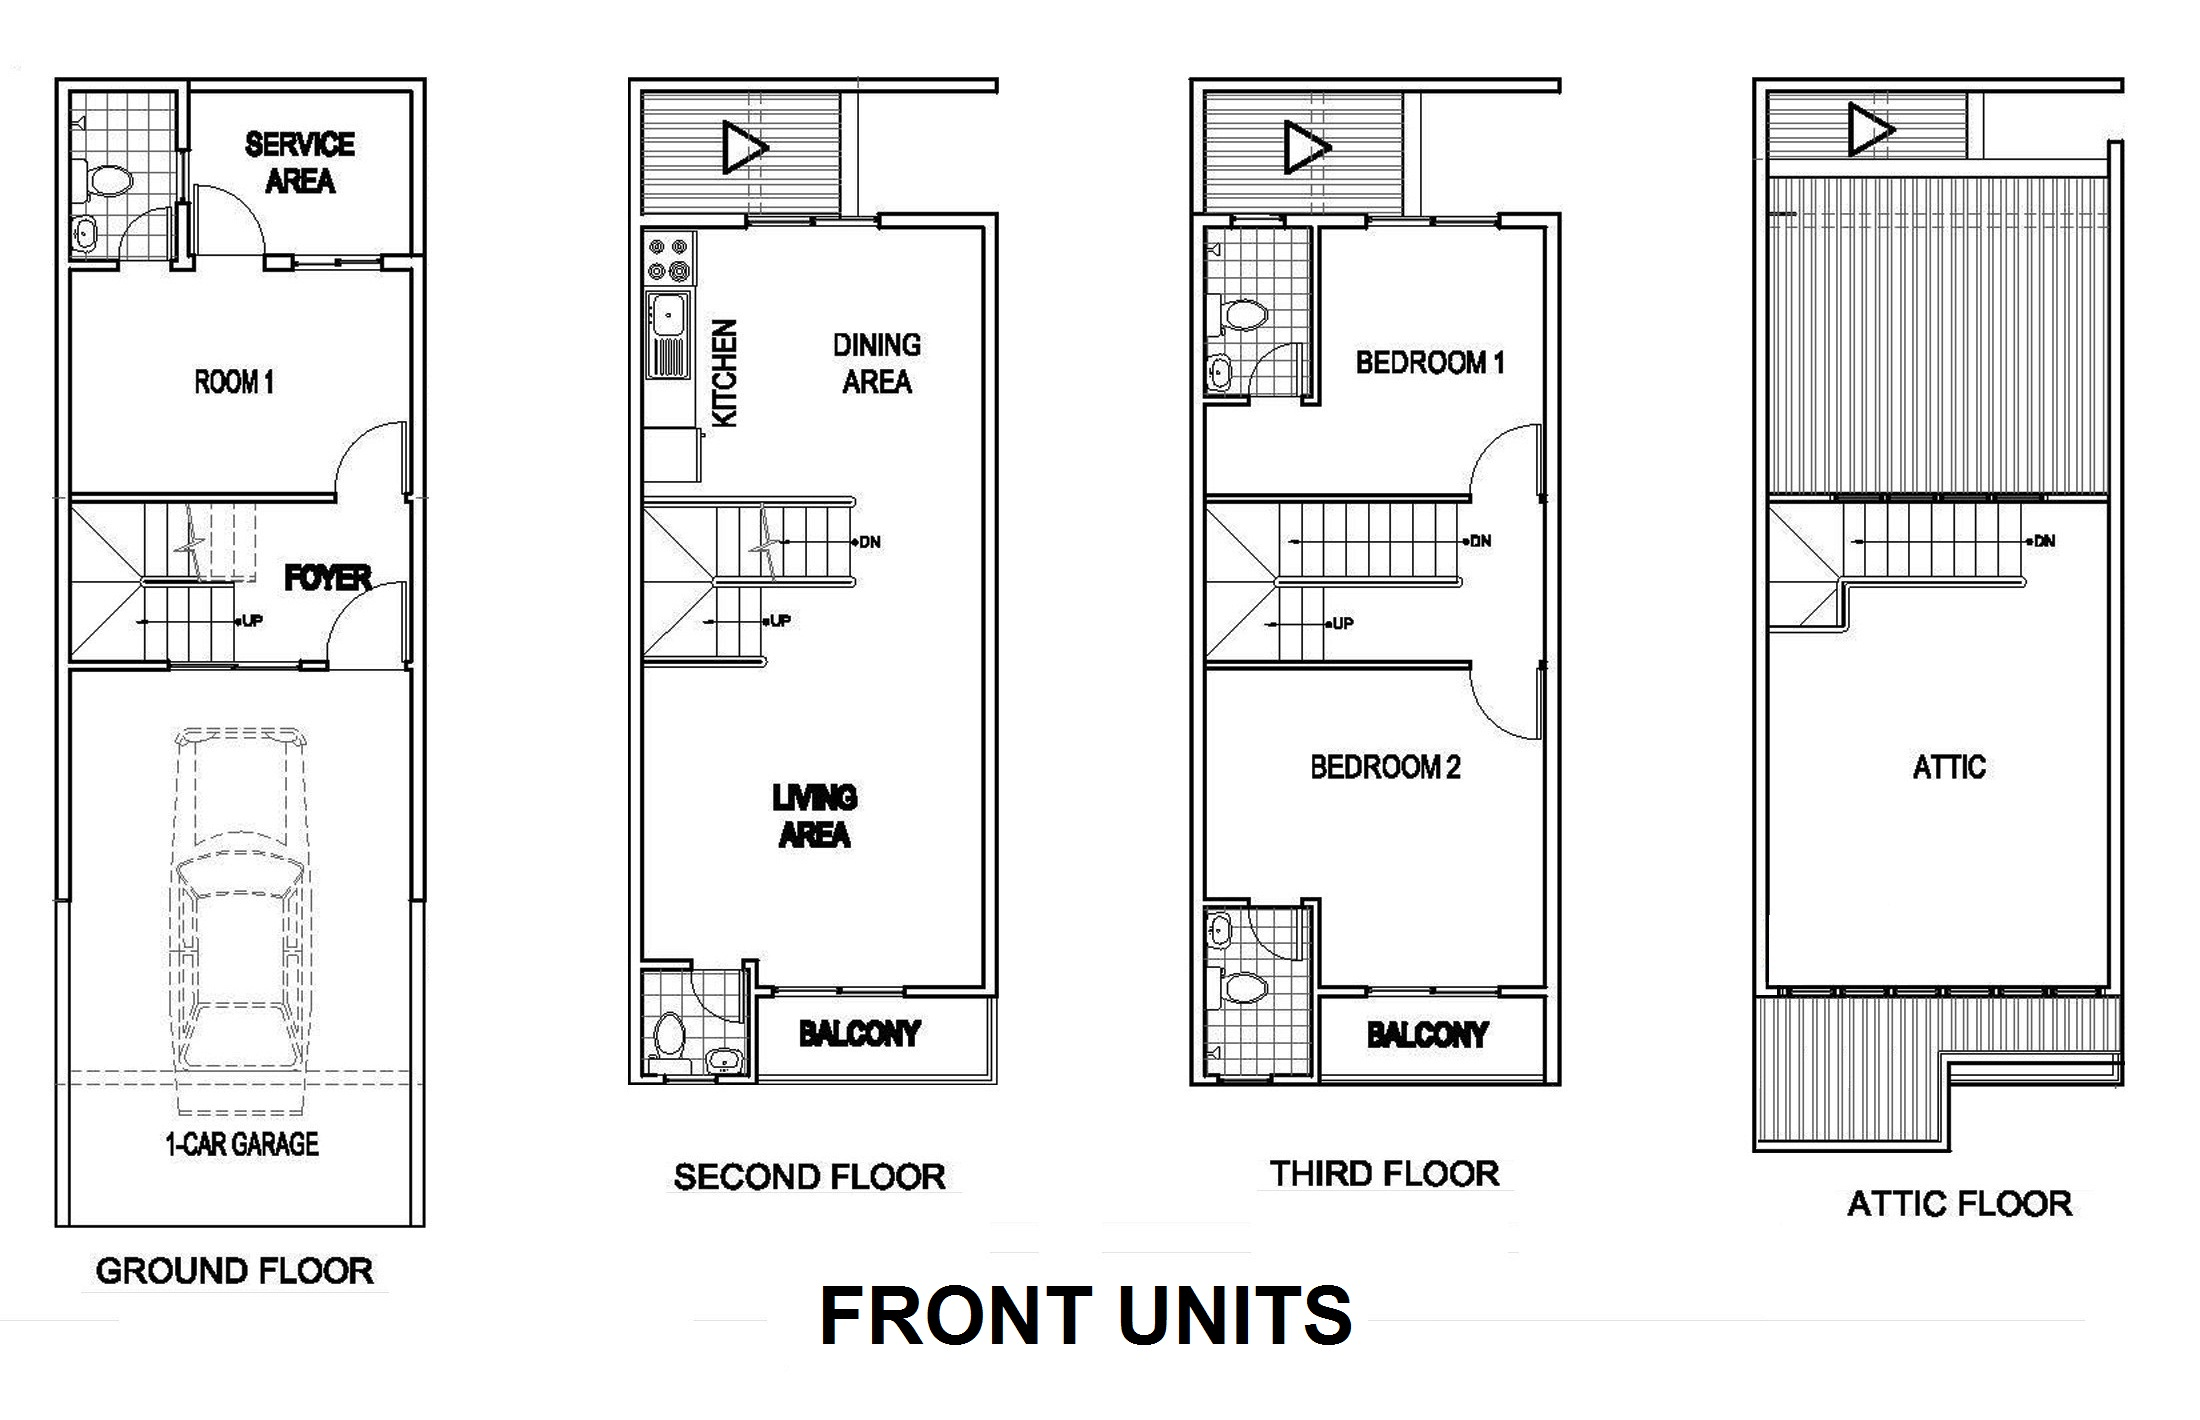 Carriage House Plans Craftsman Style Carriage House Plan With 3 also Myoutdoorplans   wp Content uploads 2013 02 Attached Carport Plans together with 125 2bed besides F1e009dc863124e1 1200 Square Foot House Plans With 3 Bedrooms 1200 Square Foot House Kits additionally One Car Mini Garage Plans Free. on cost to build a detached garage